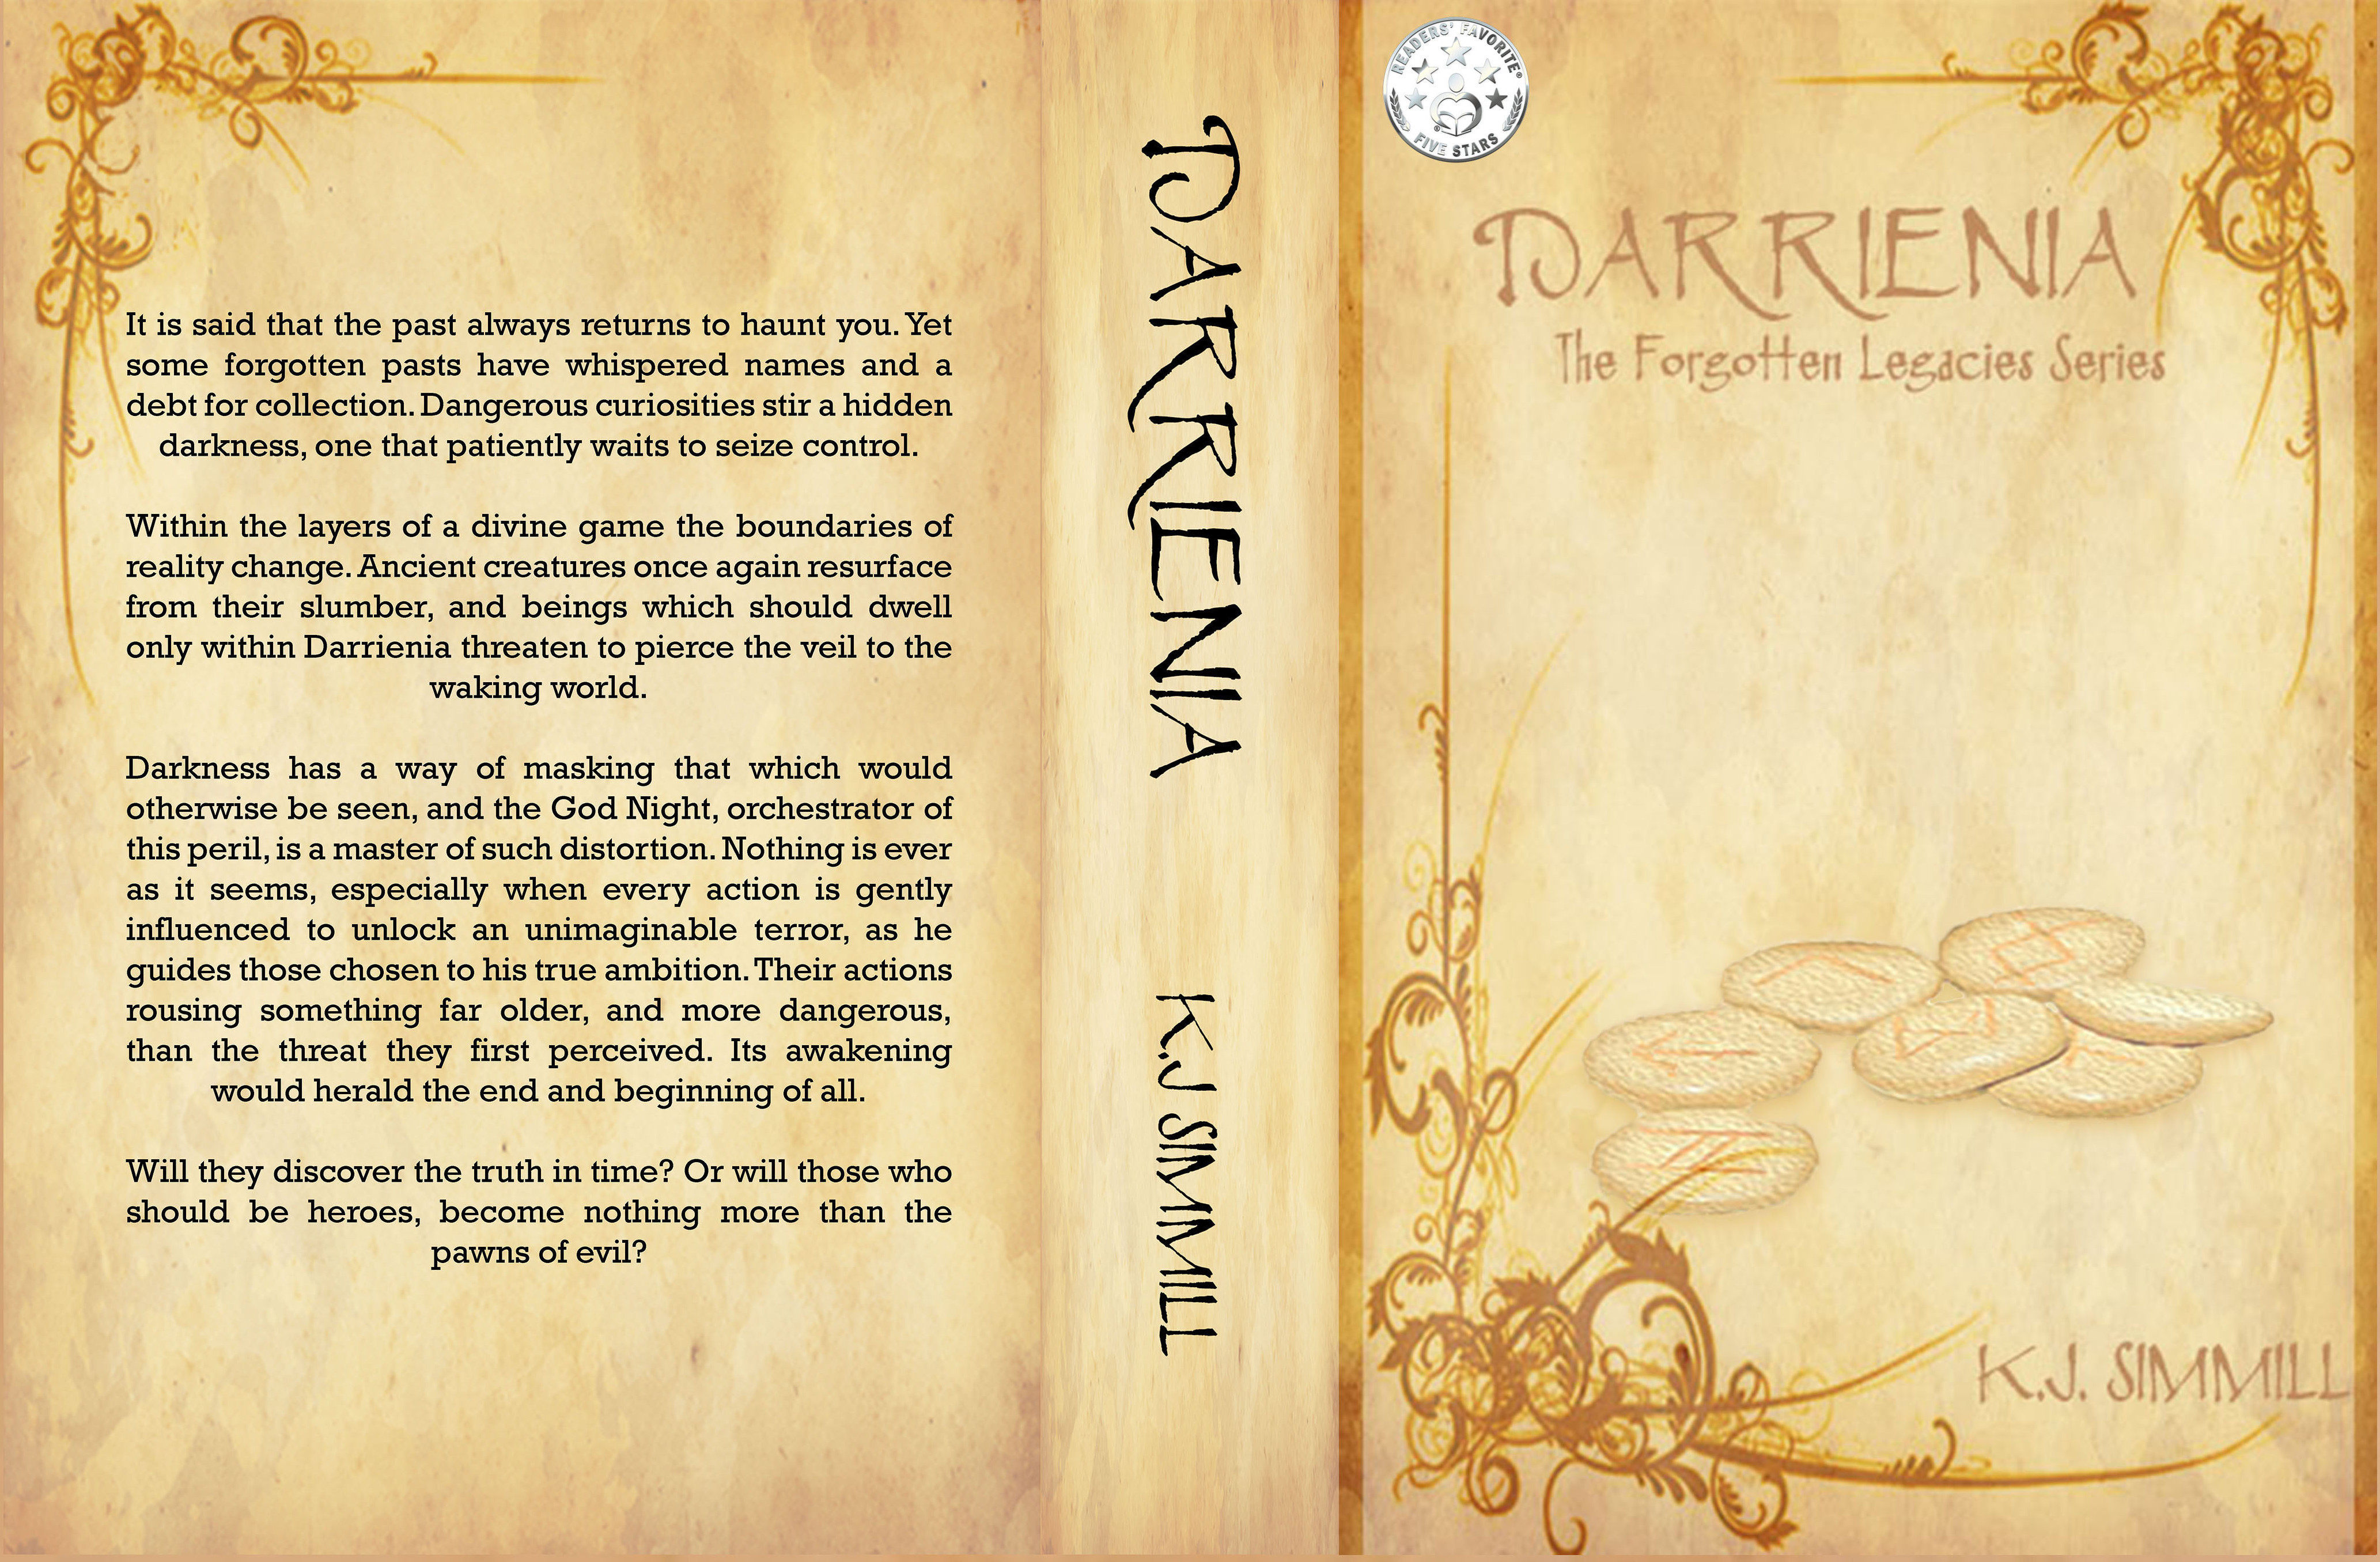 K.J.\'s Books | Darrienia: The Forgotten Legacies Series